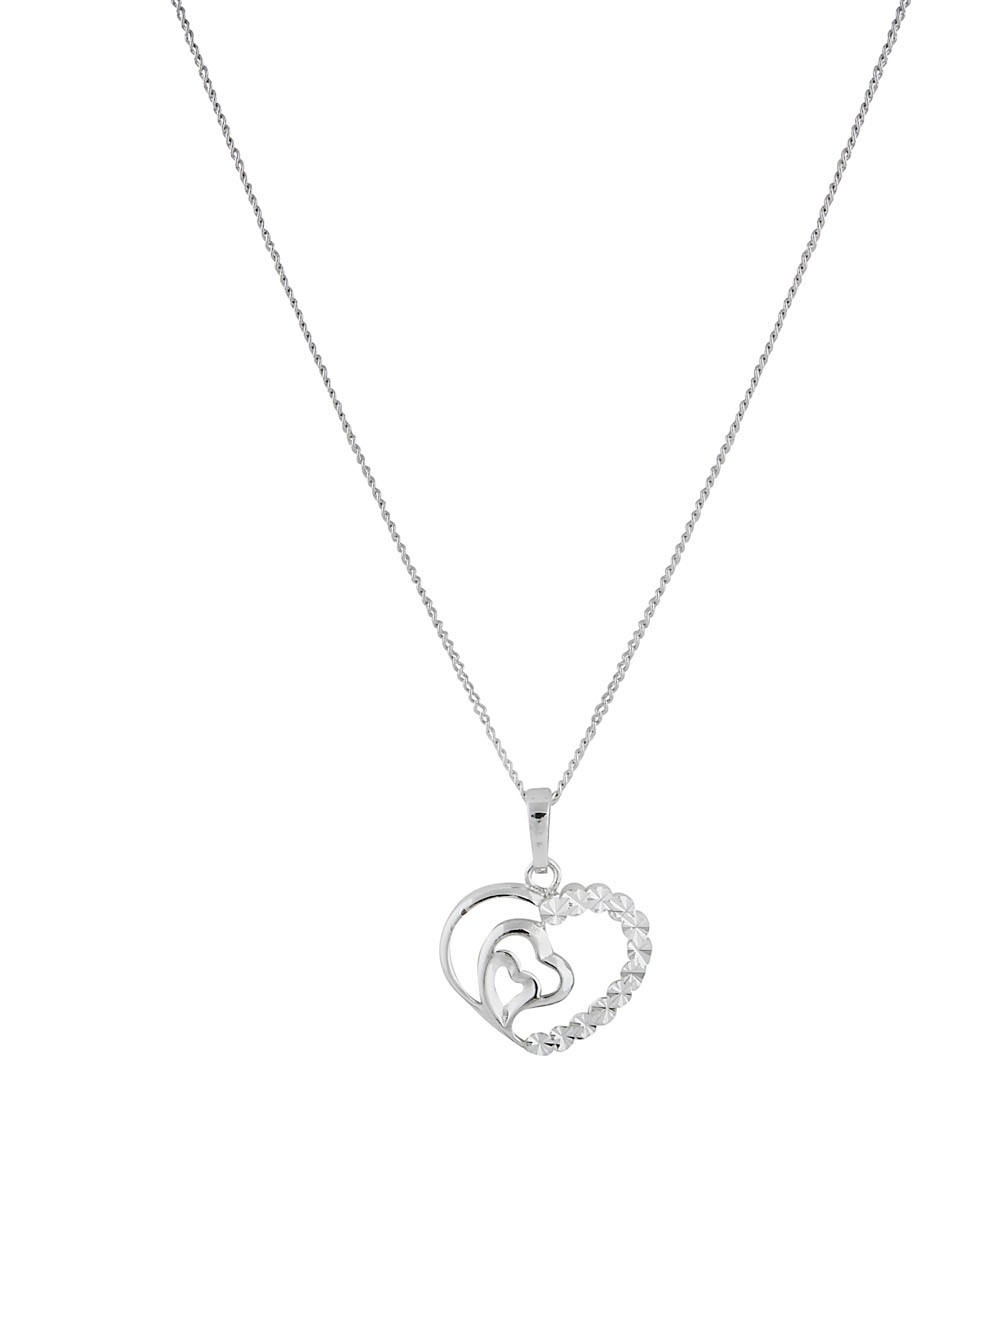 Triple Heart Rhodium Plated Pendant Necklace